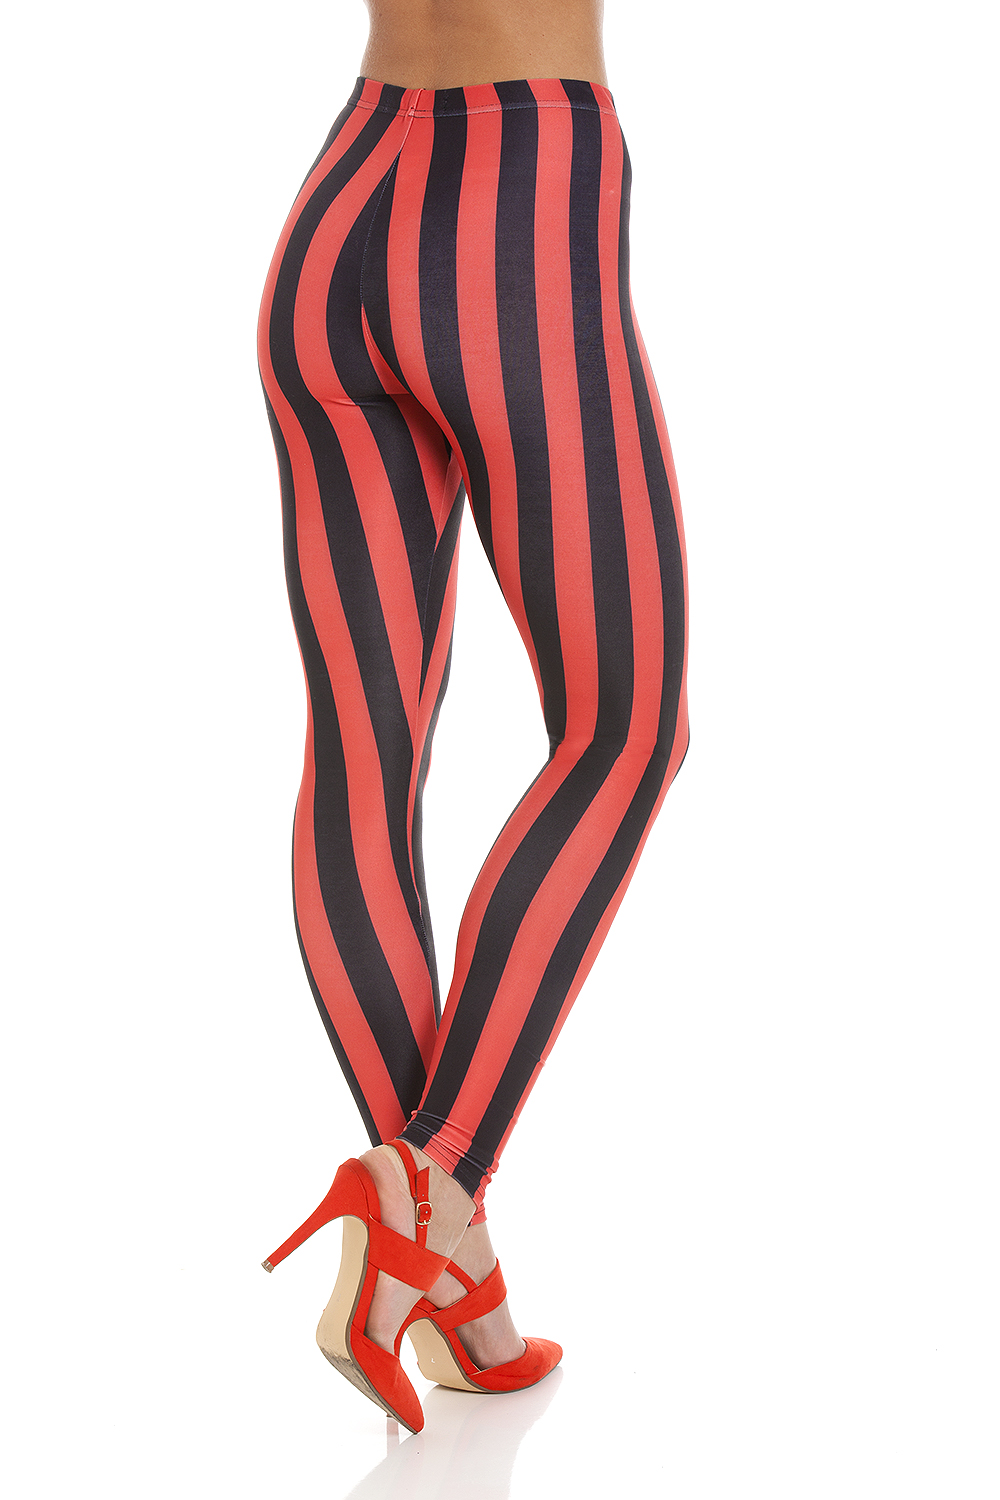 professional product photography on amazon white backdrop photoshoot photography of womens striped leggings for online retailer